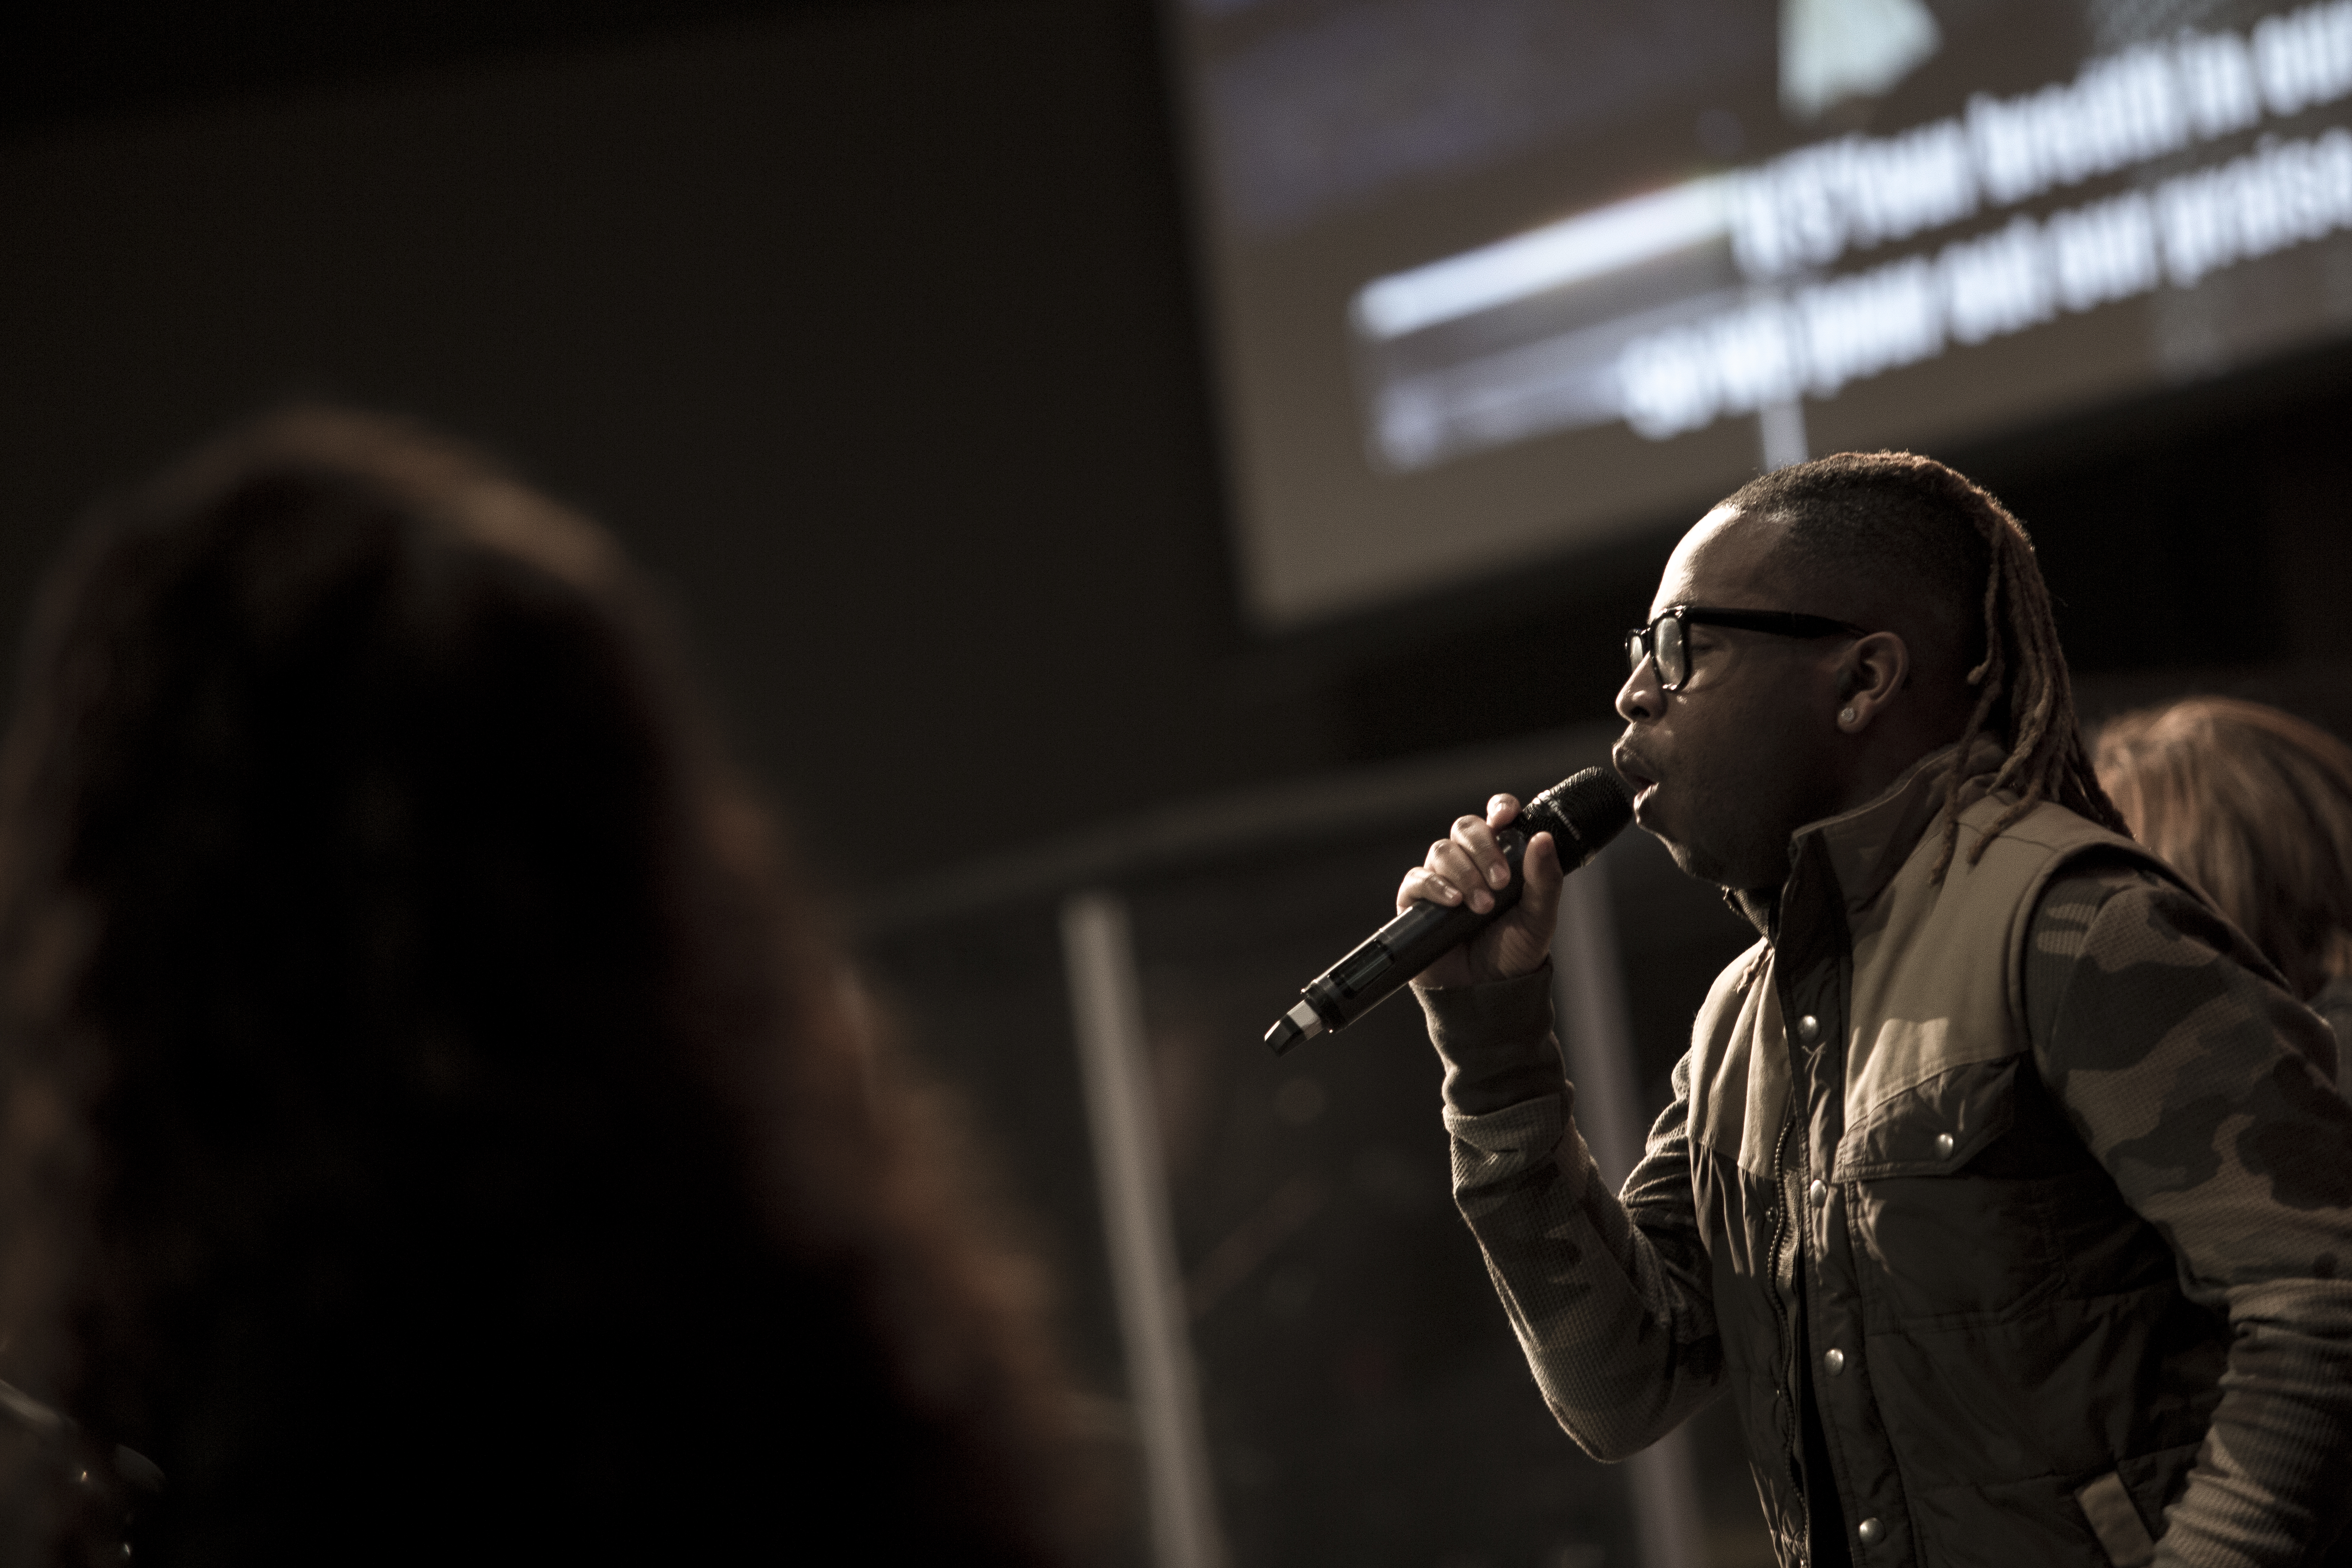 Creative shot of Ch'vez - you could see the passion in our worship today!